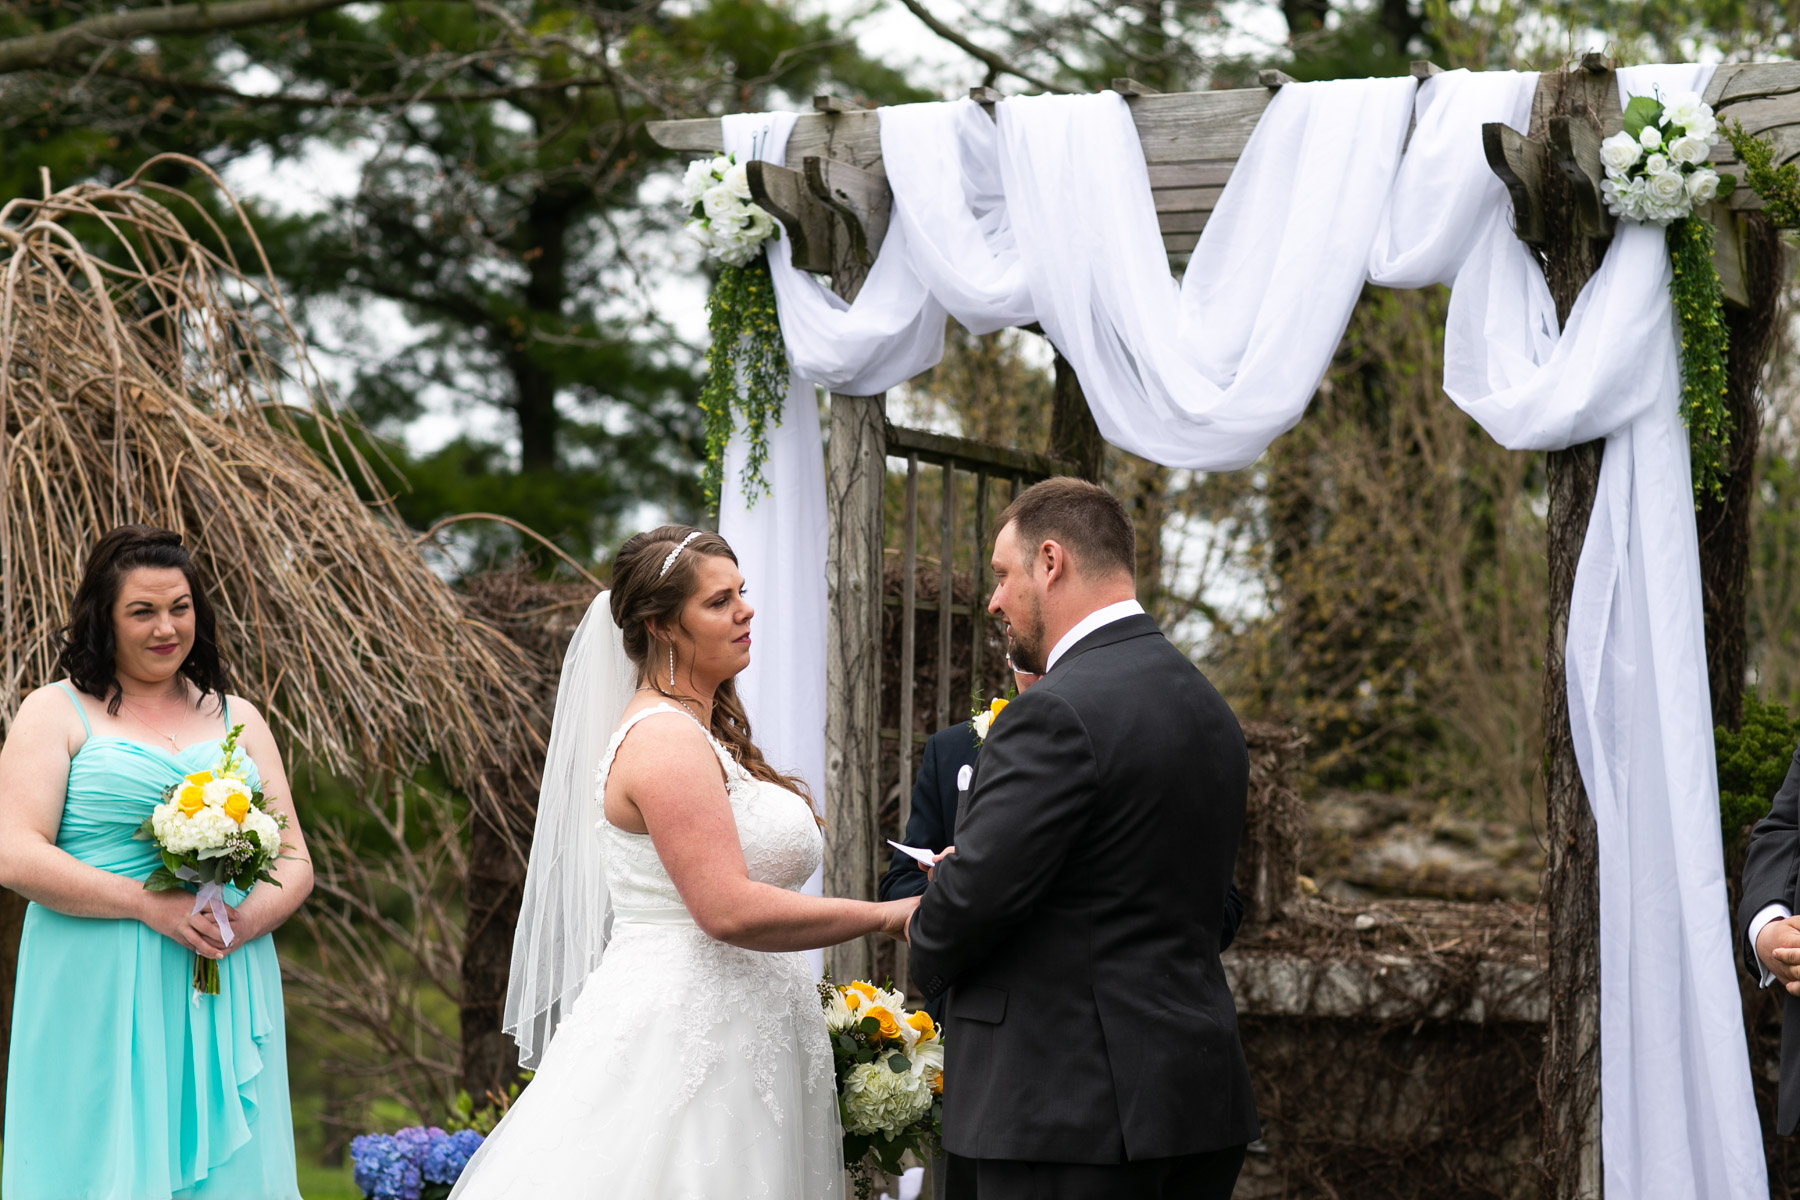 Intimate moment of bride and groom at outdoor wedding ceremony